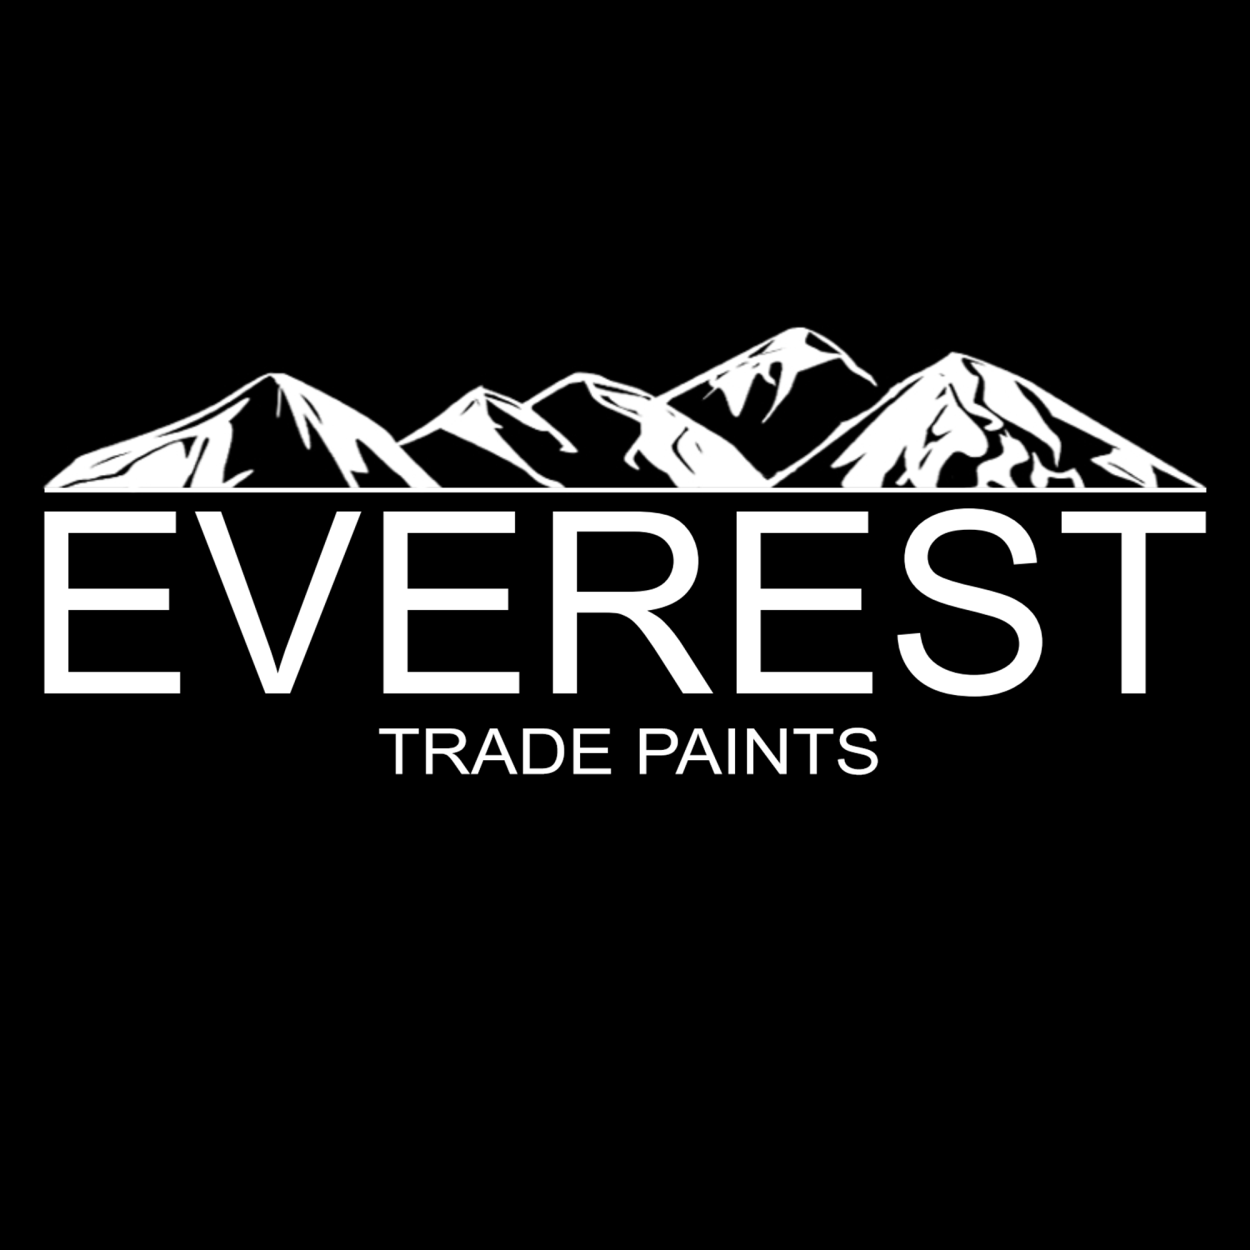 Everest Trade Paints